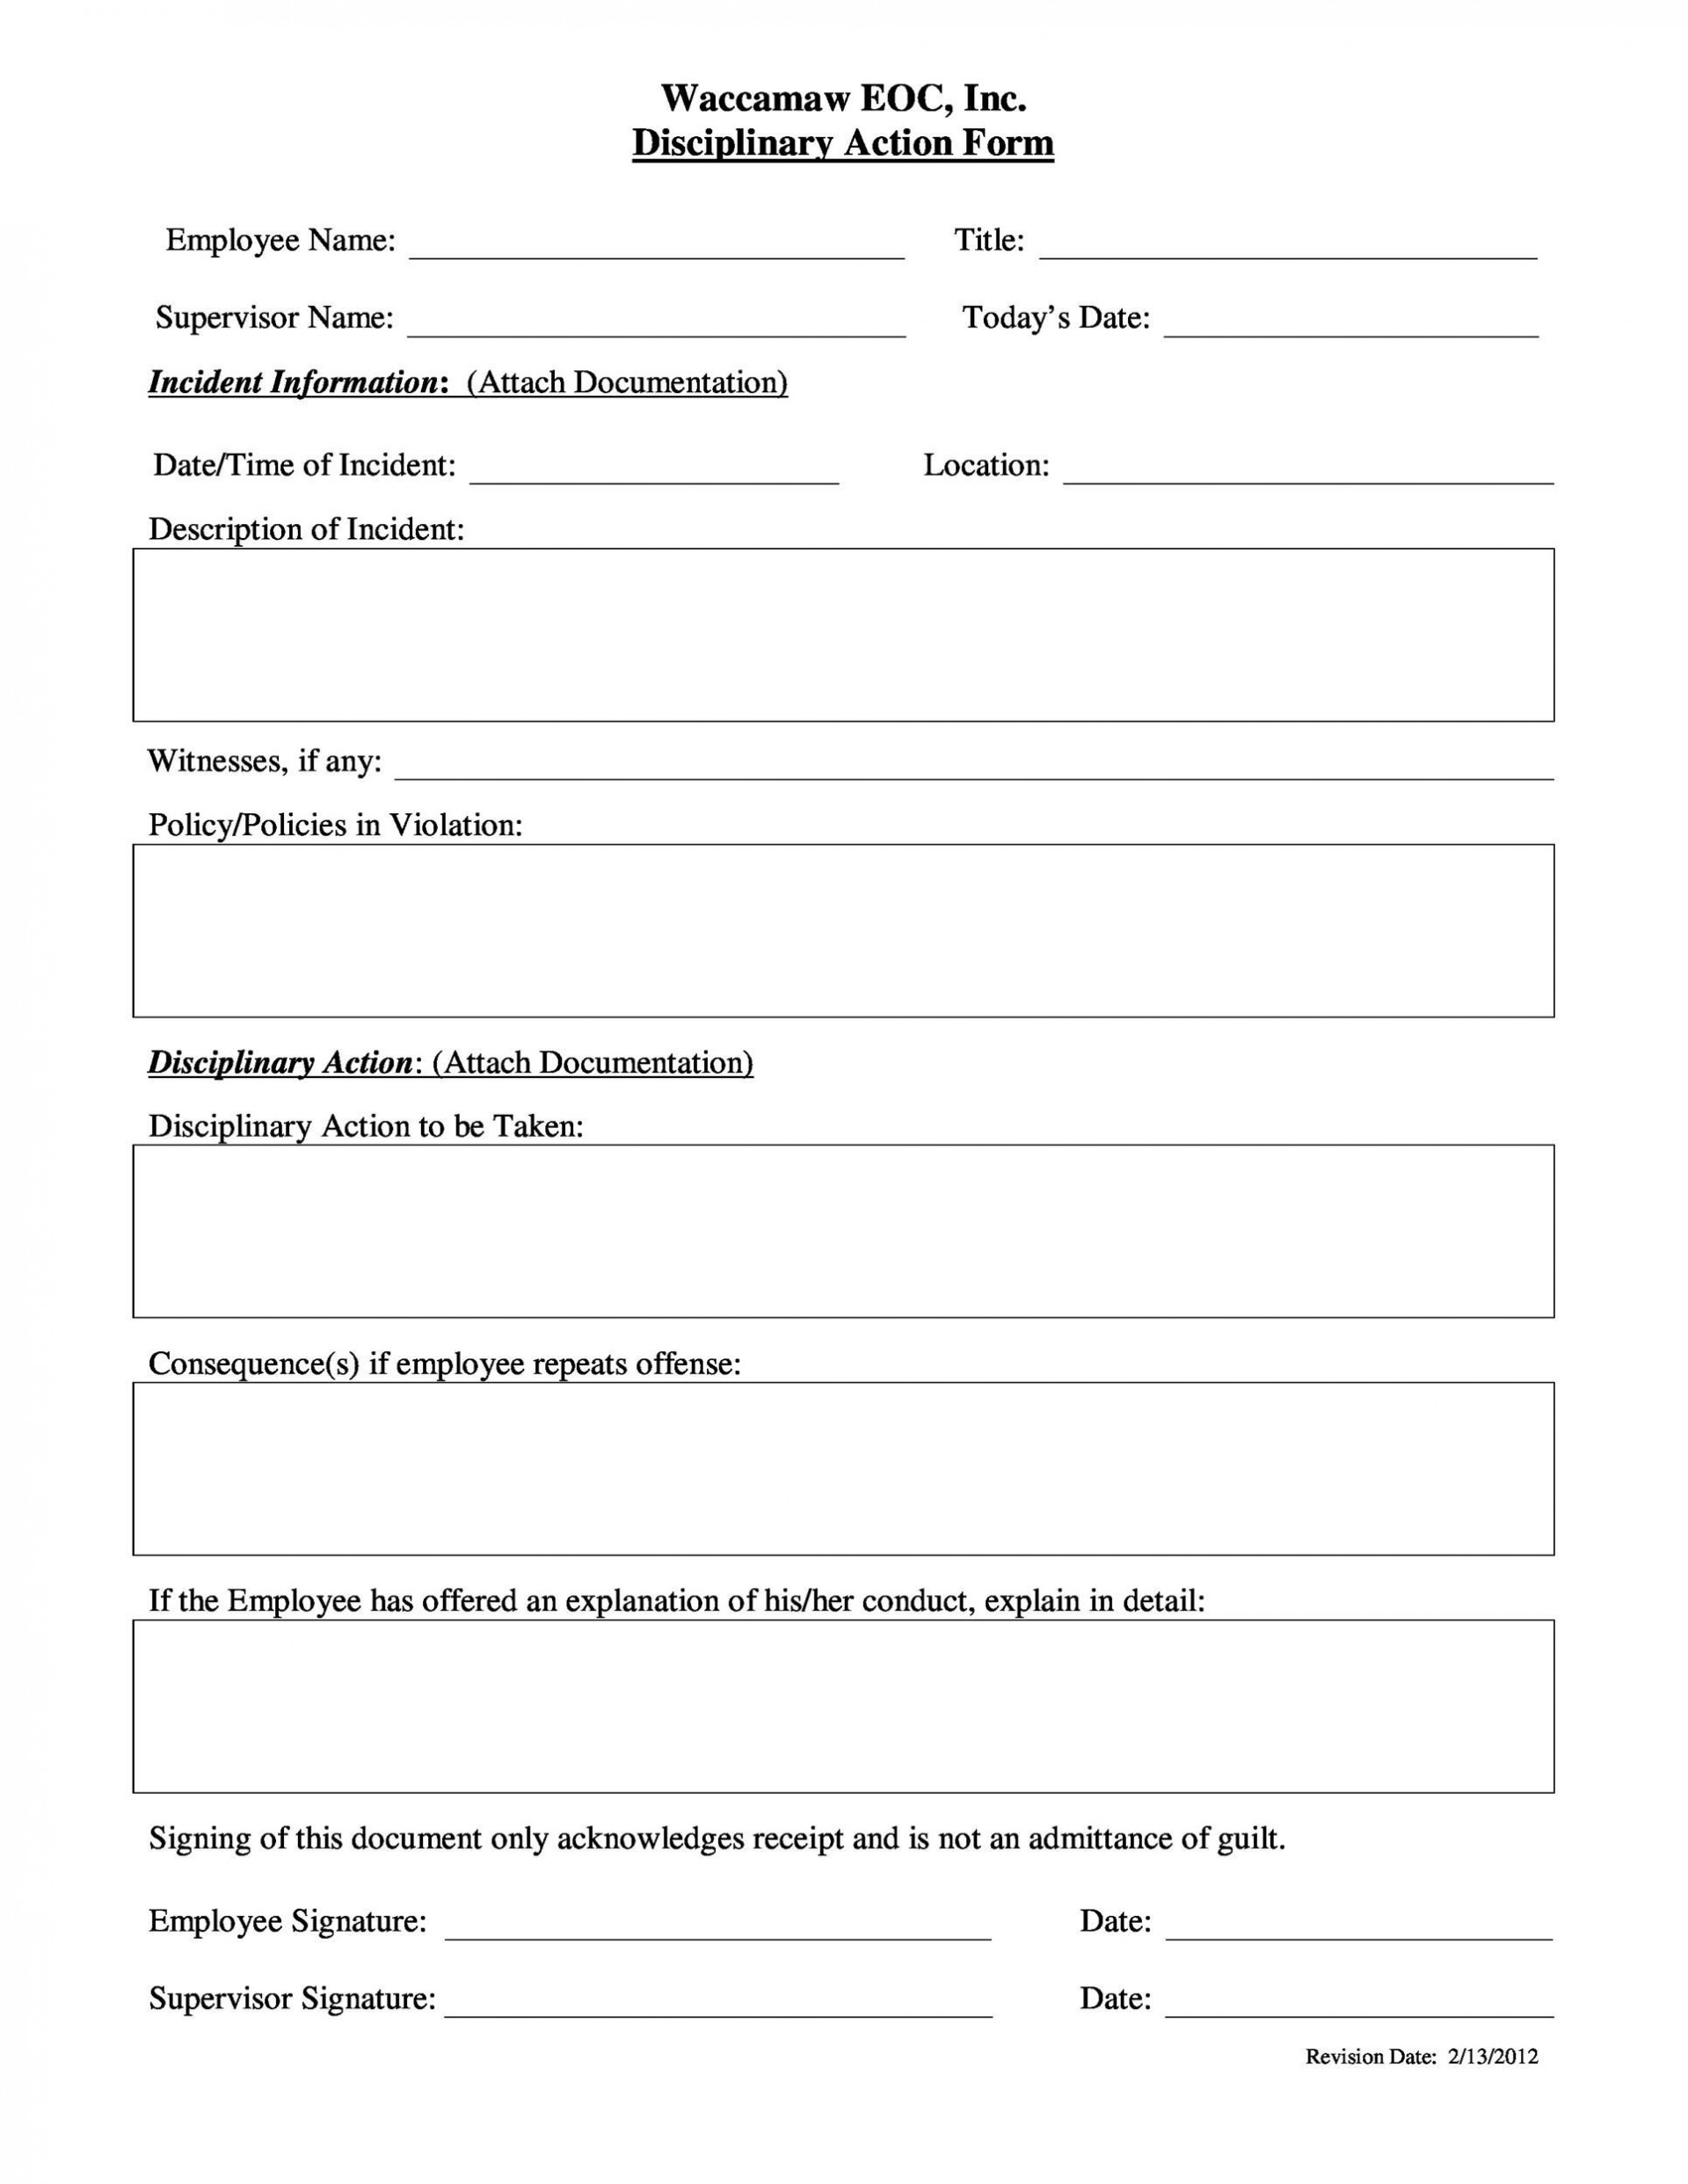 009 Exceptional Disciplinary Write Up Template Inspiration  Templates Employer Form1920